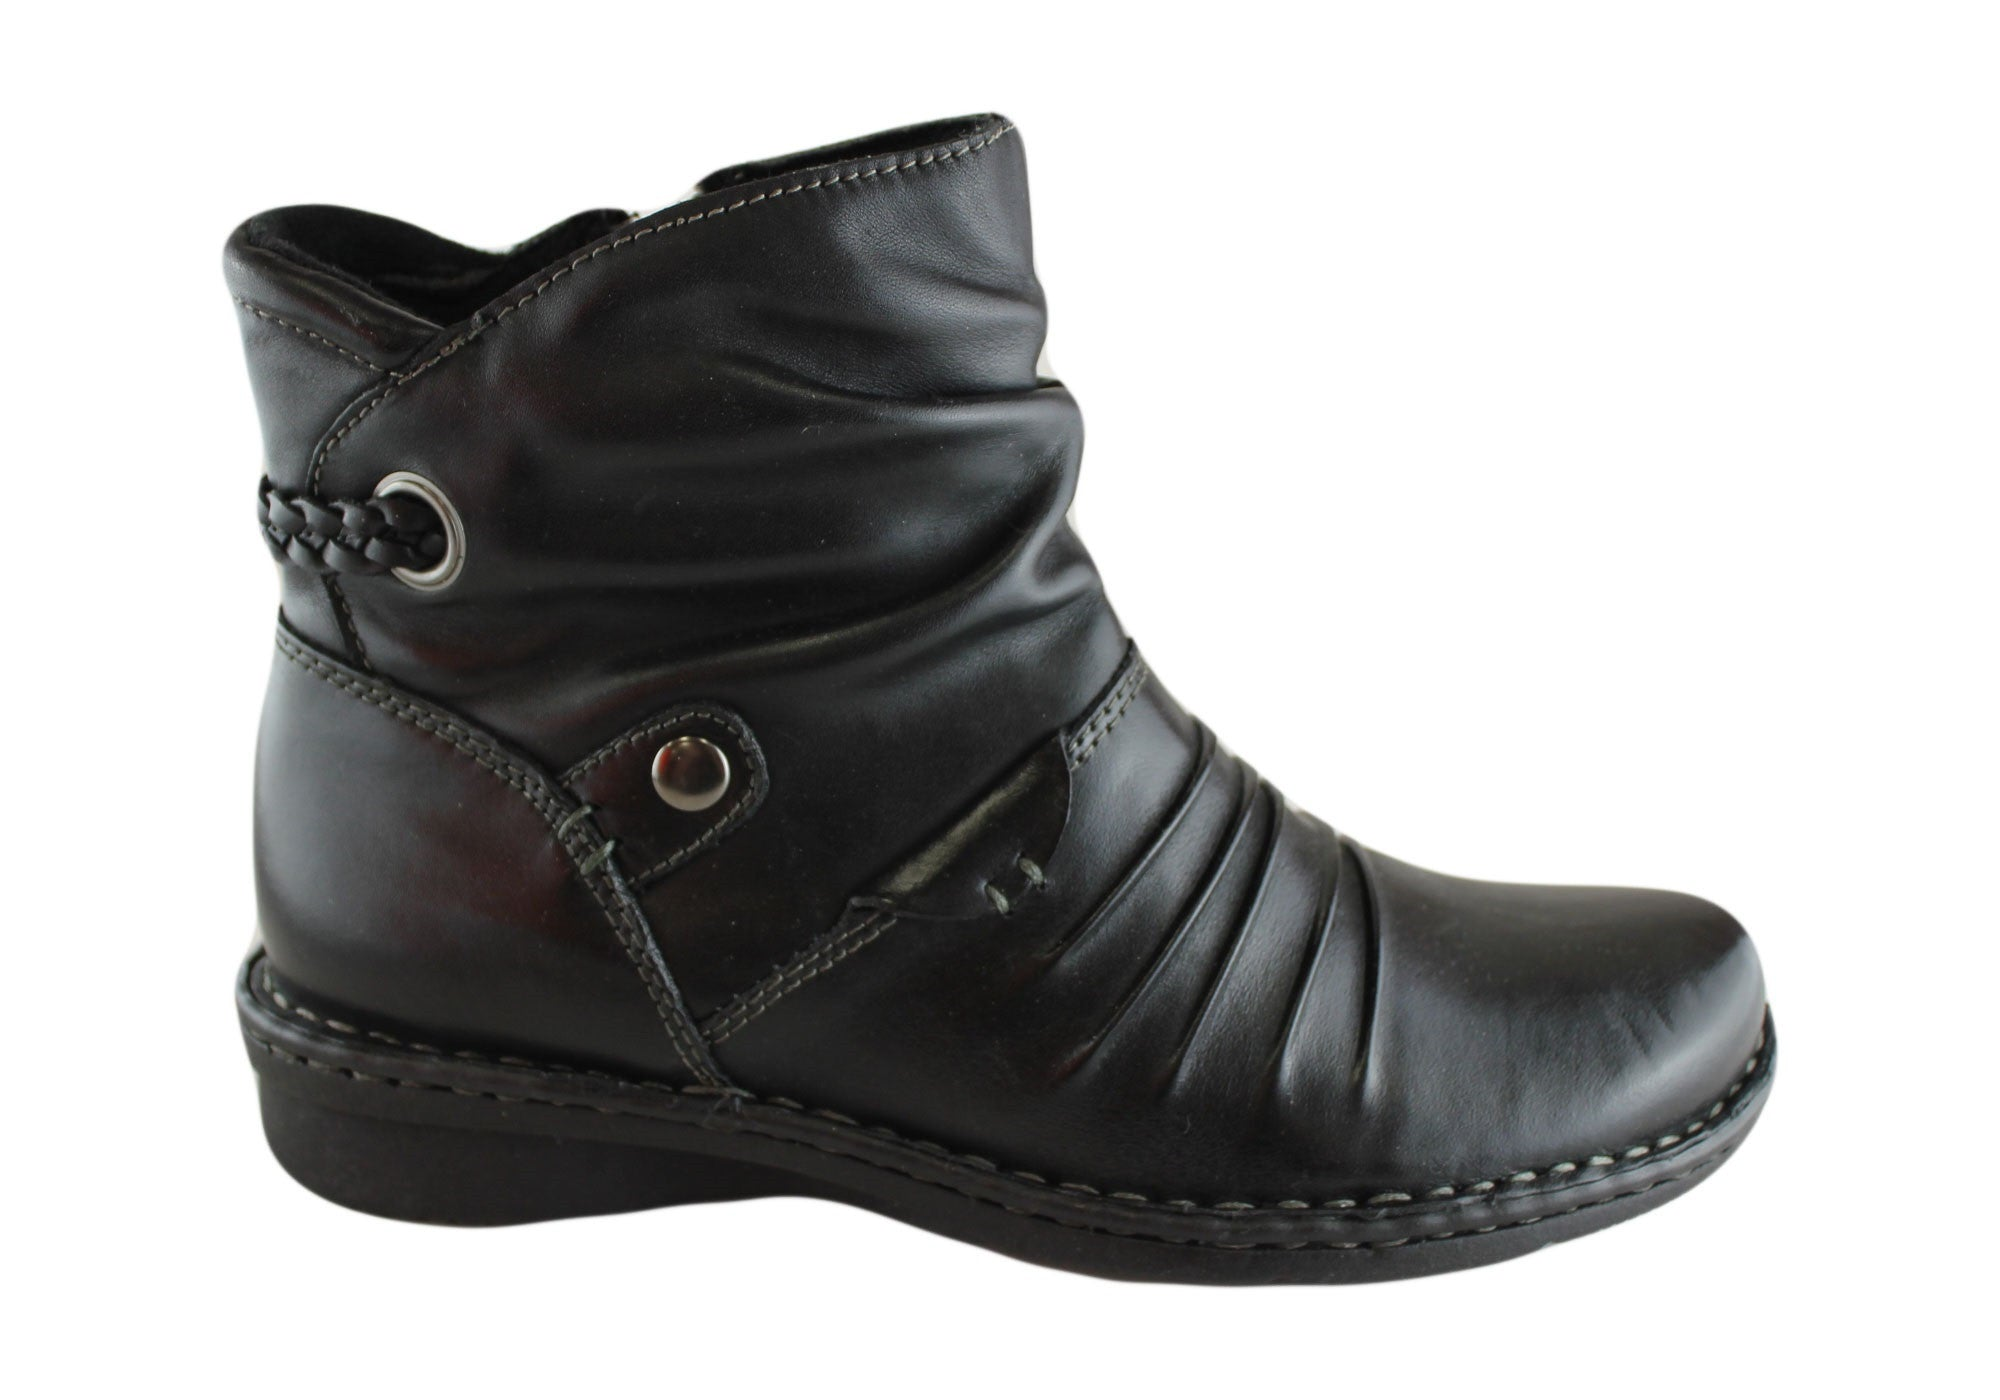 NEW PLANET SHOES MIRA WOMENS LEATHER ANKLE BOOTS | EBay